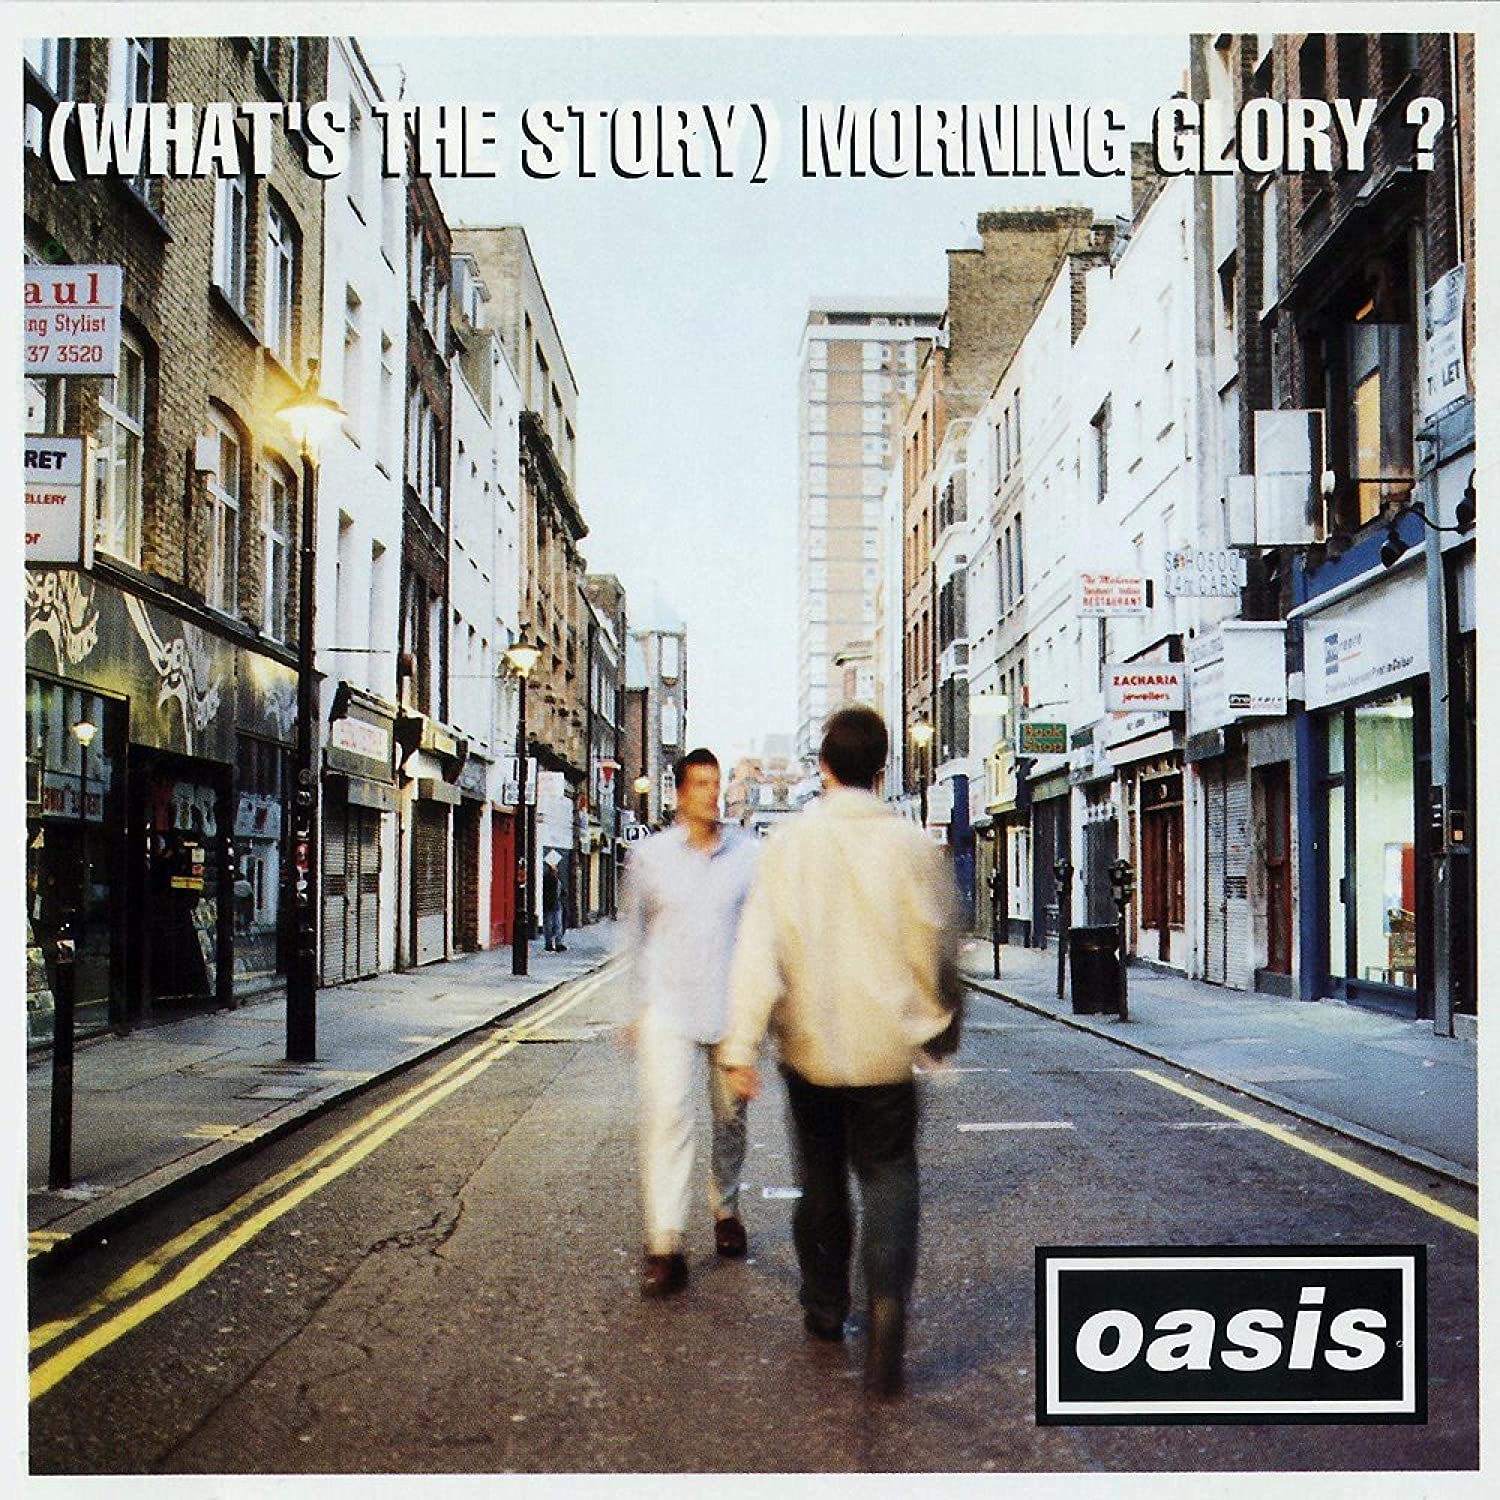 Oasis - What's The Story Morning Glory? [2LP] (Silver Vinyl, 25th Anniversary Edition Remastered, limited)